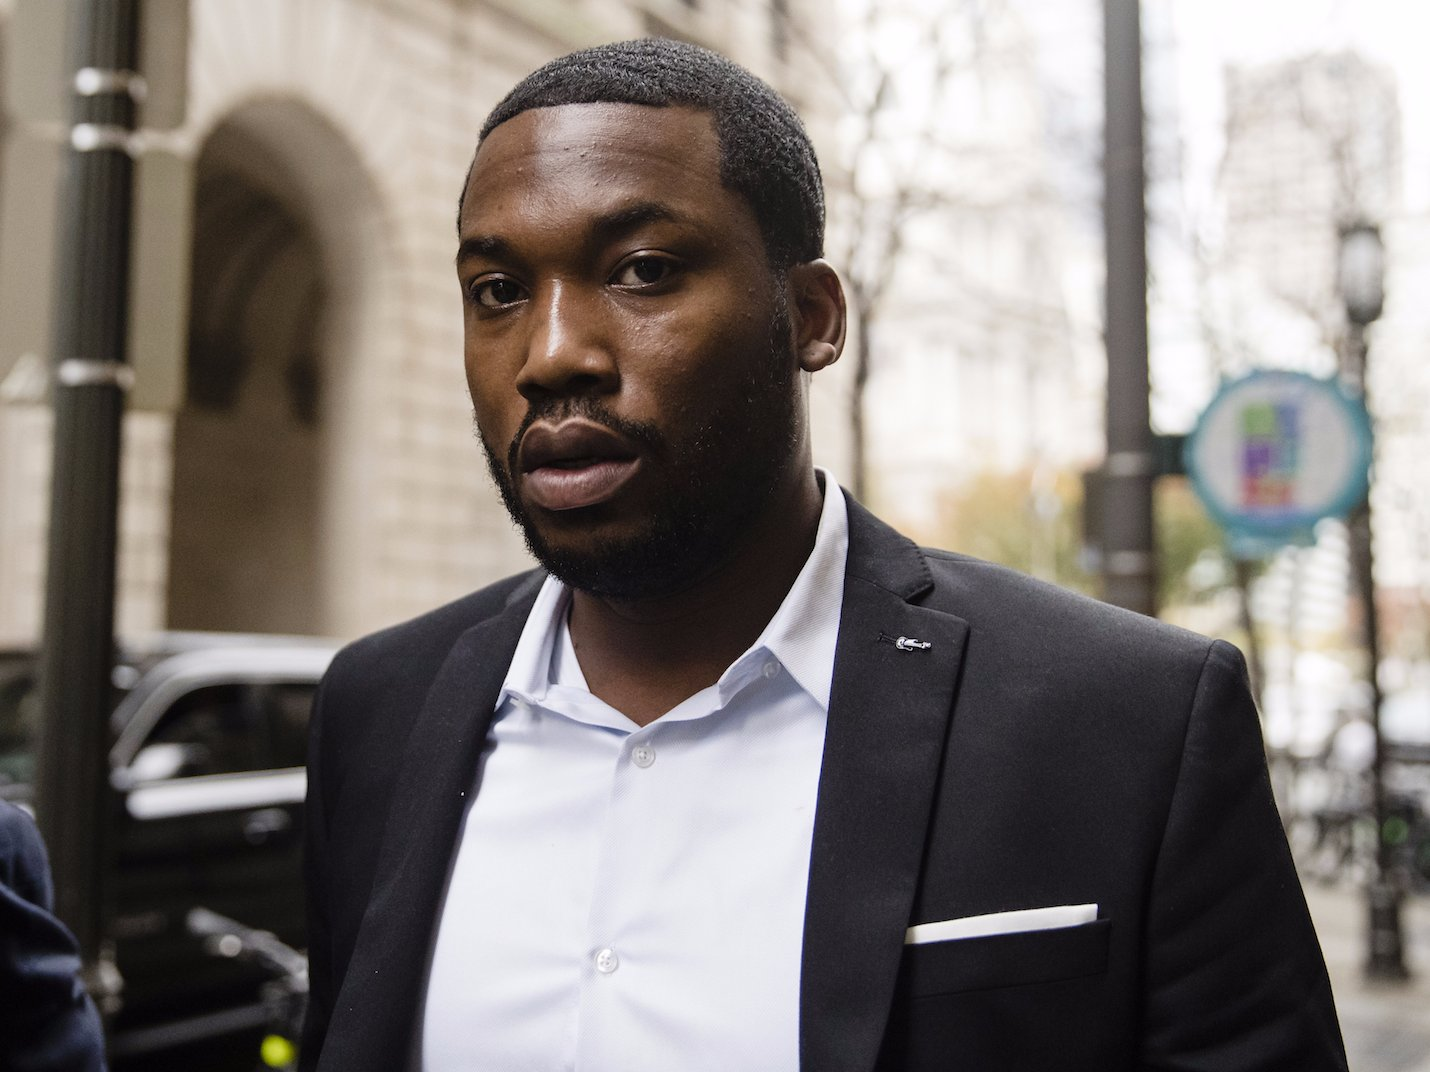 More than 100000 people petition Pennsylvania to free Meek Mill